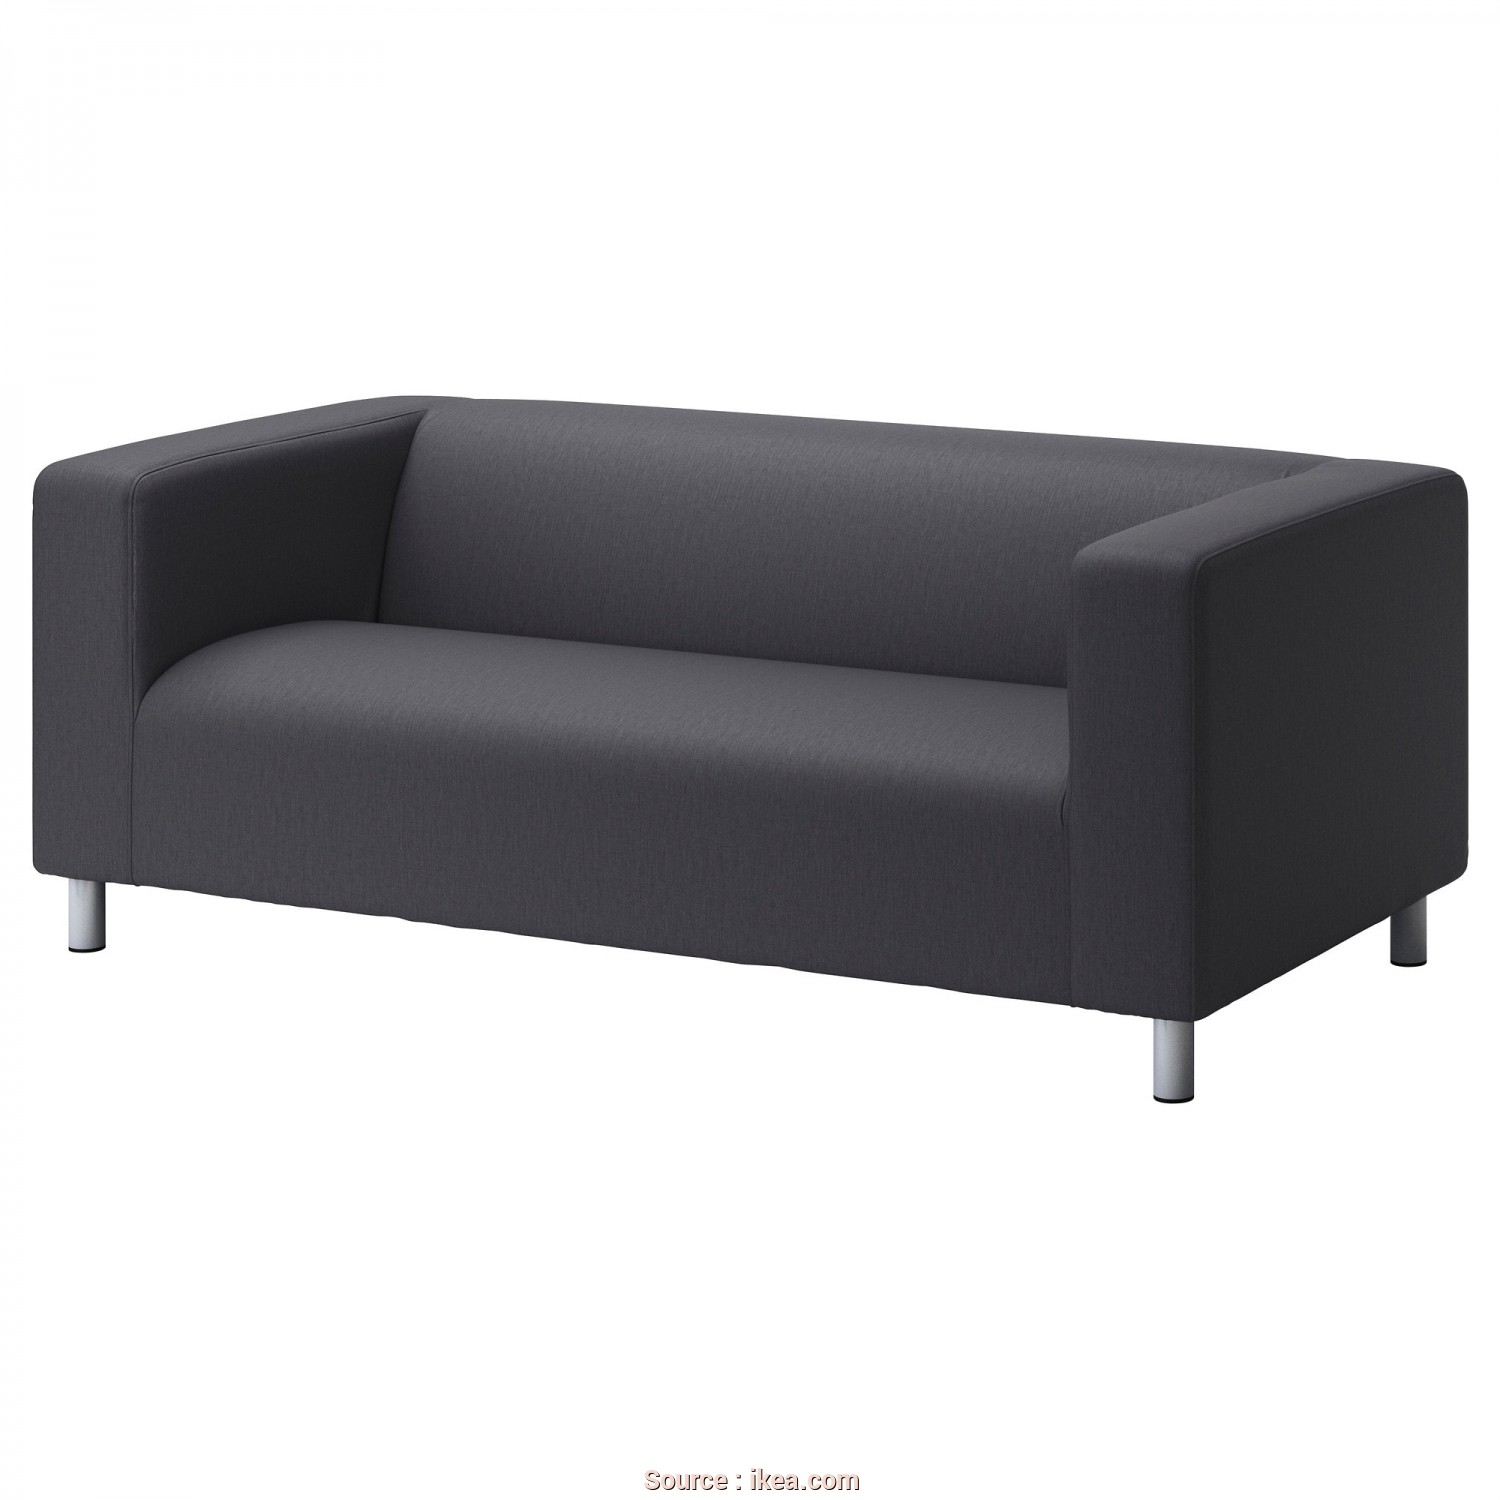 Amabile 4 Ikea Klippan 2 Seater Sofa Review